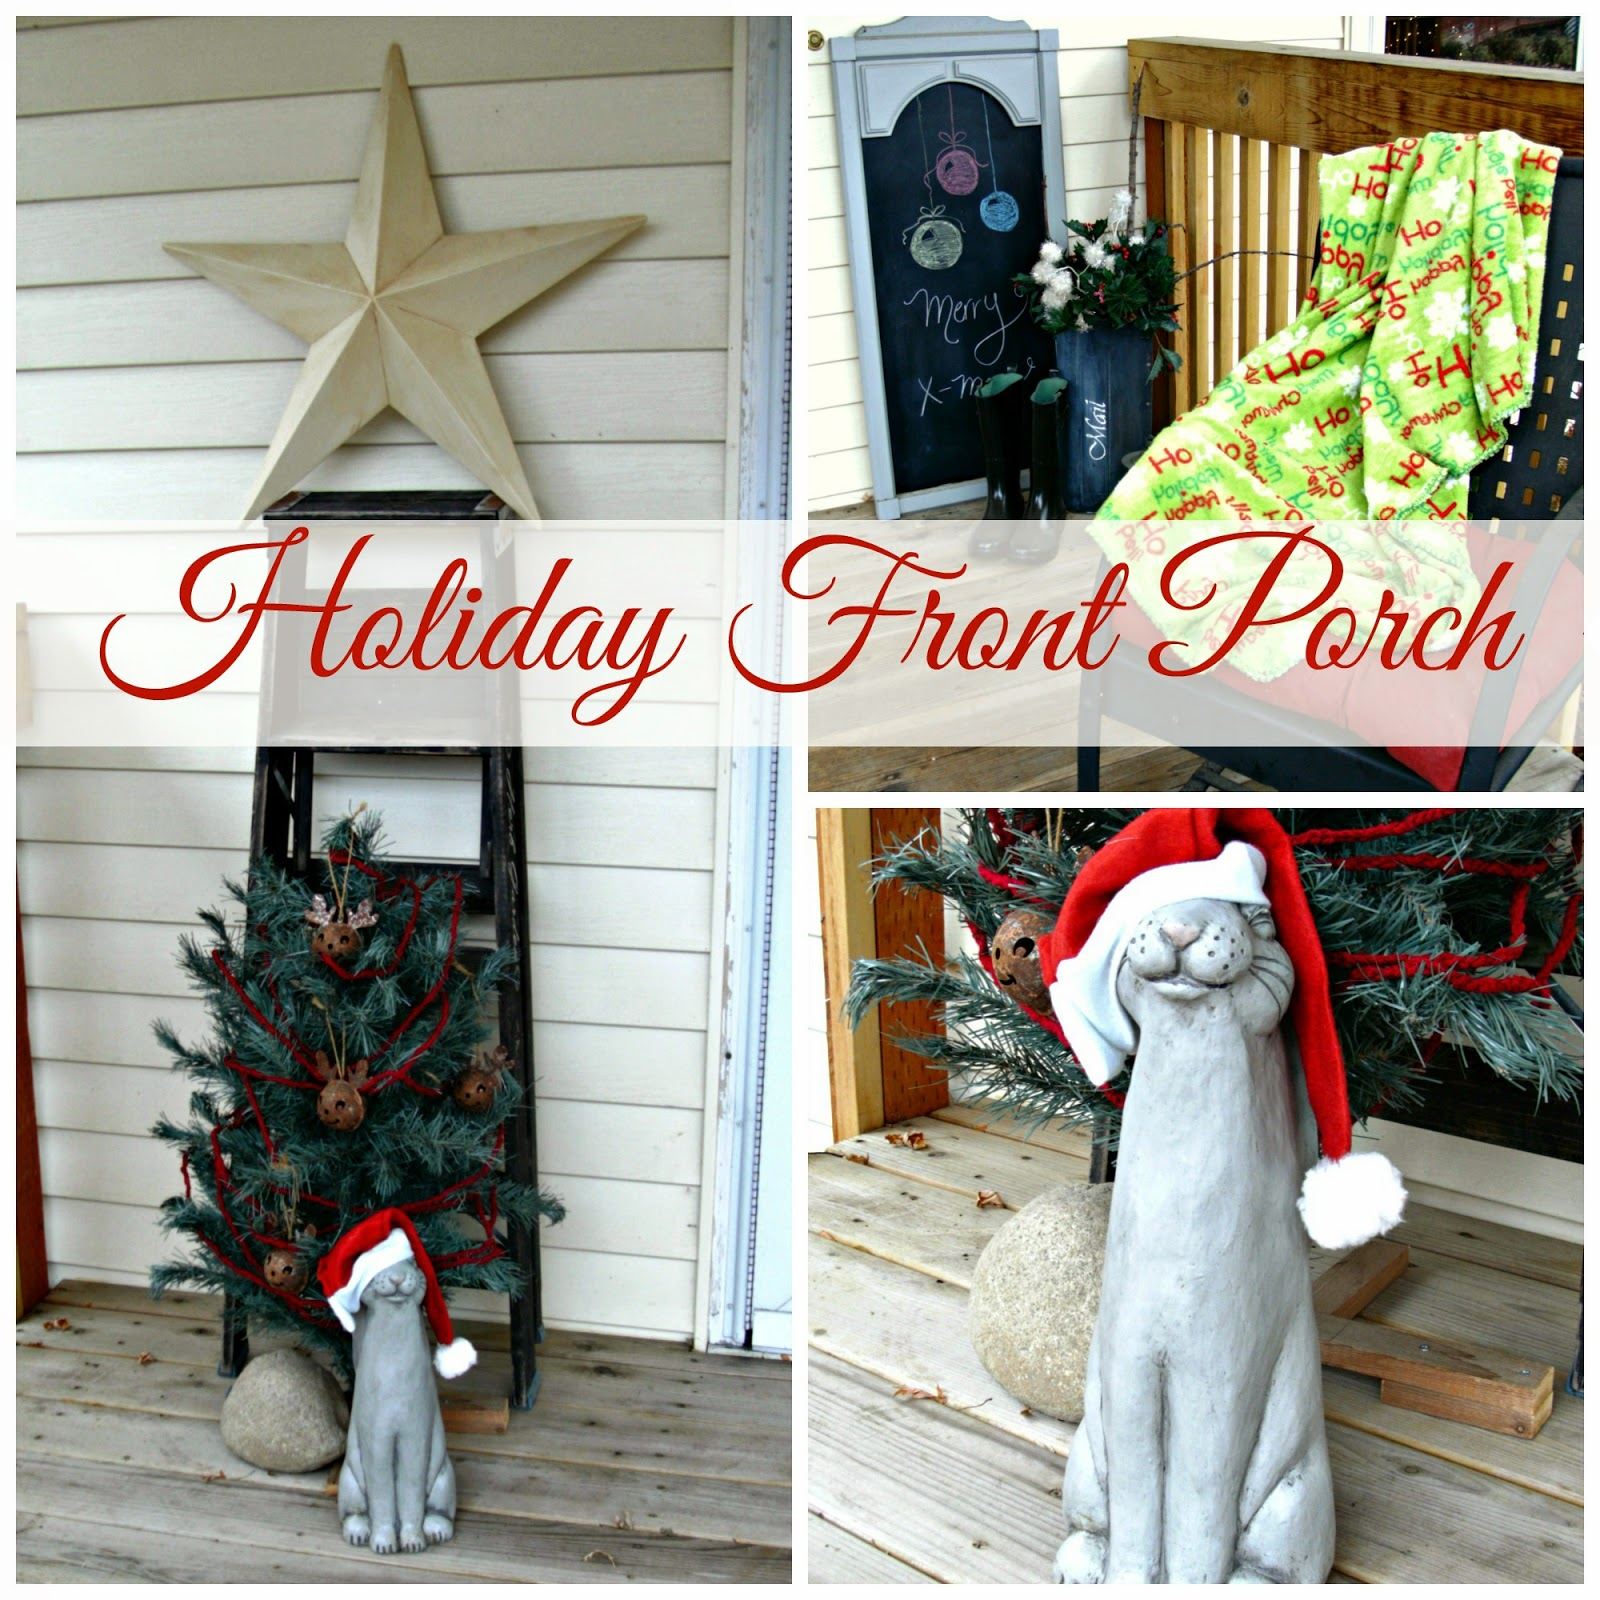 decorating a porch for Christmas